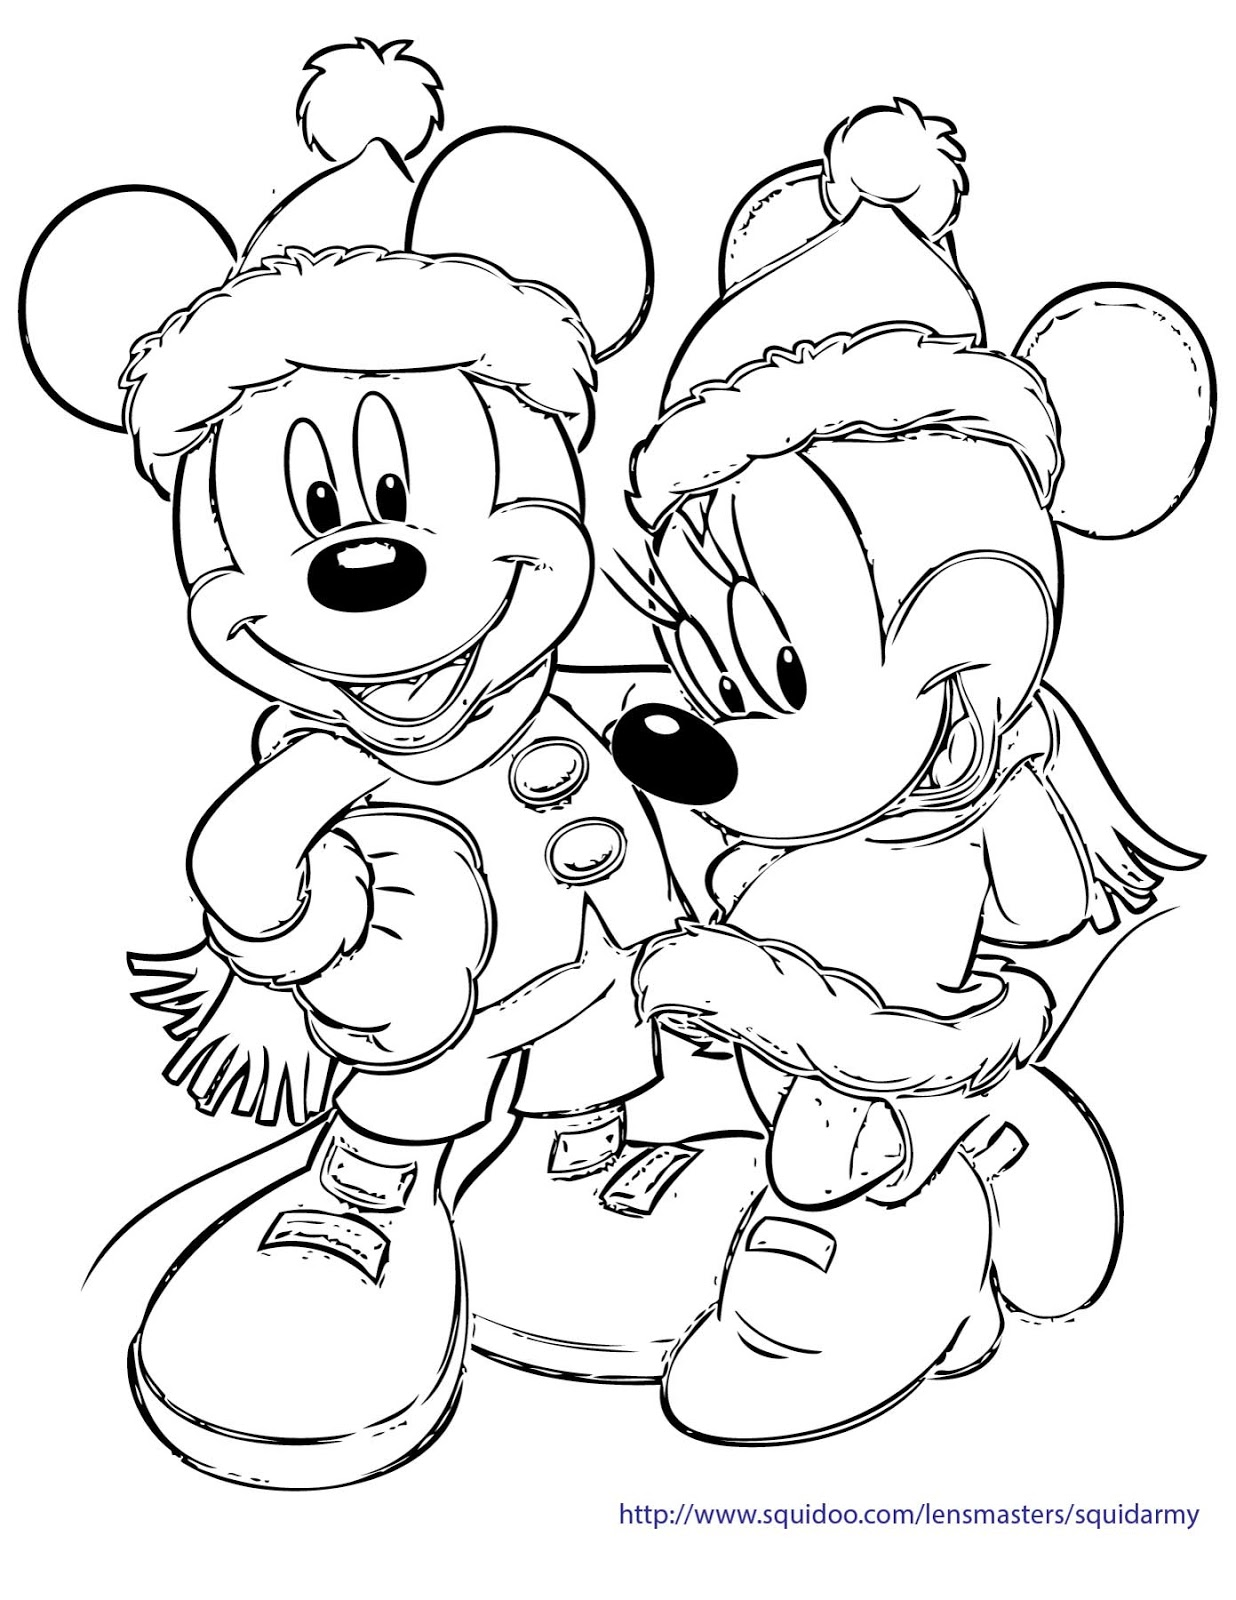 Mickey Mouse Drawing For Kids At Getdrawings Com Free For Personal